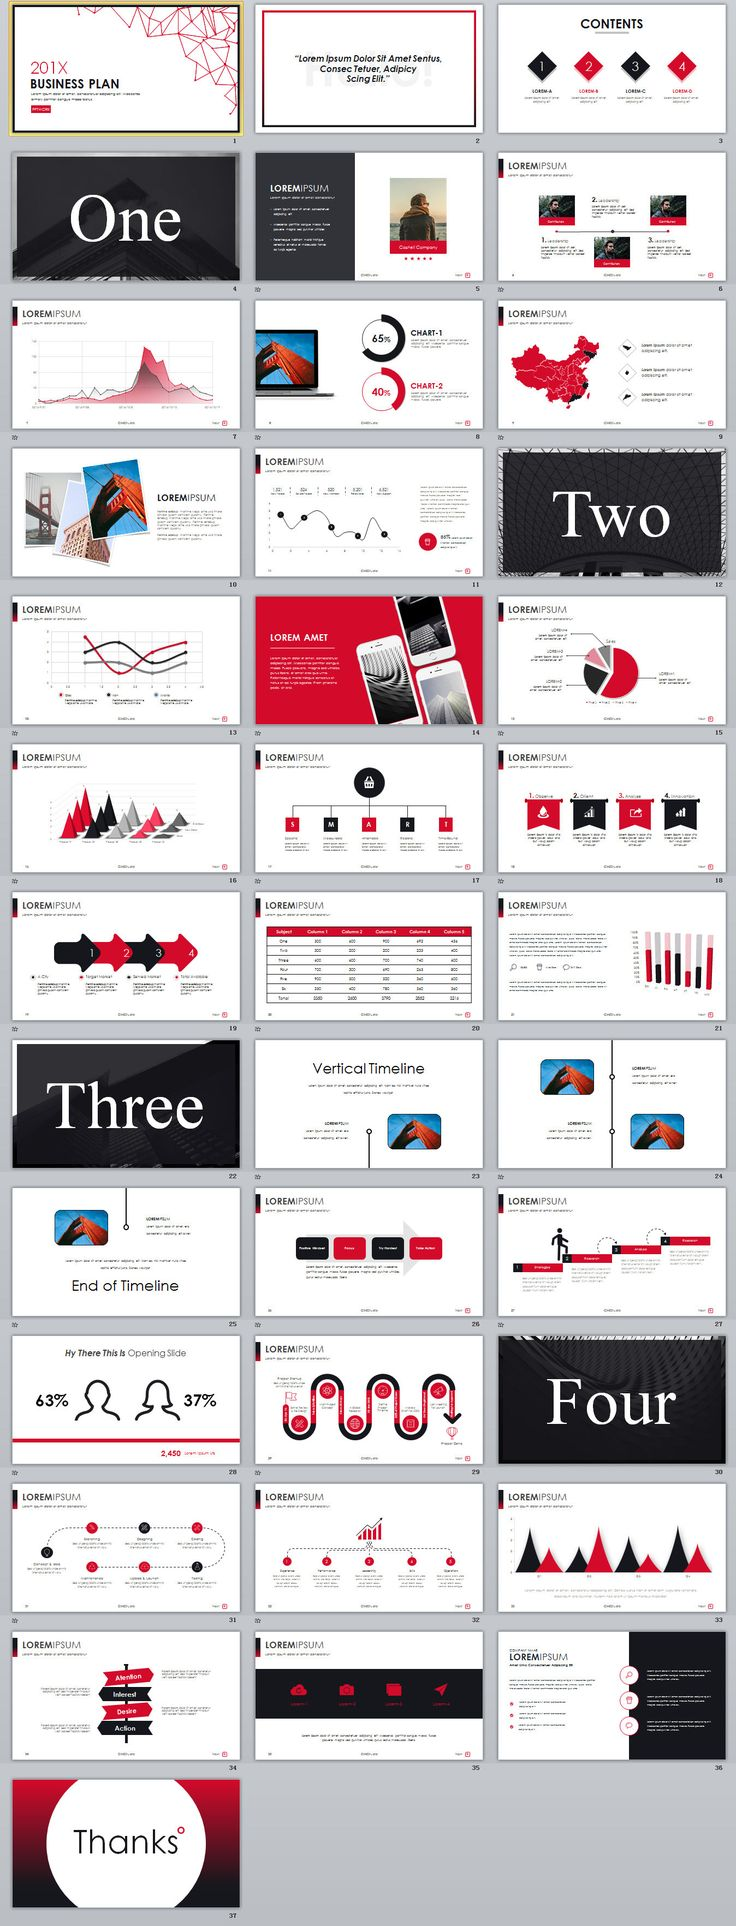 Best business powerpoint templates vaydileforic best business powerpoint templates fbccfo Choice Image